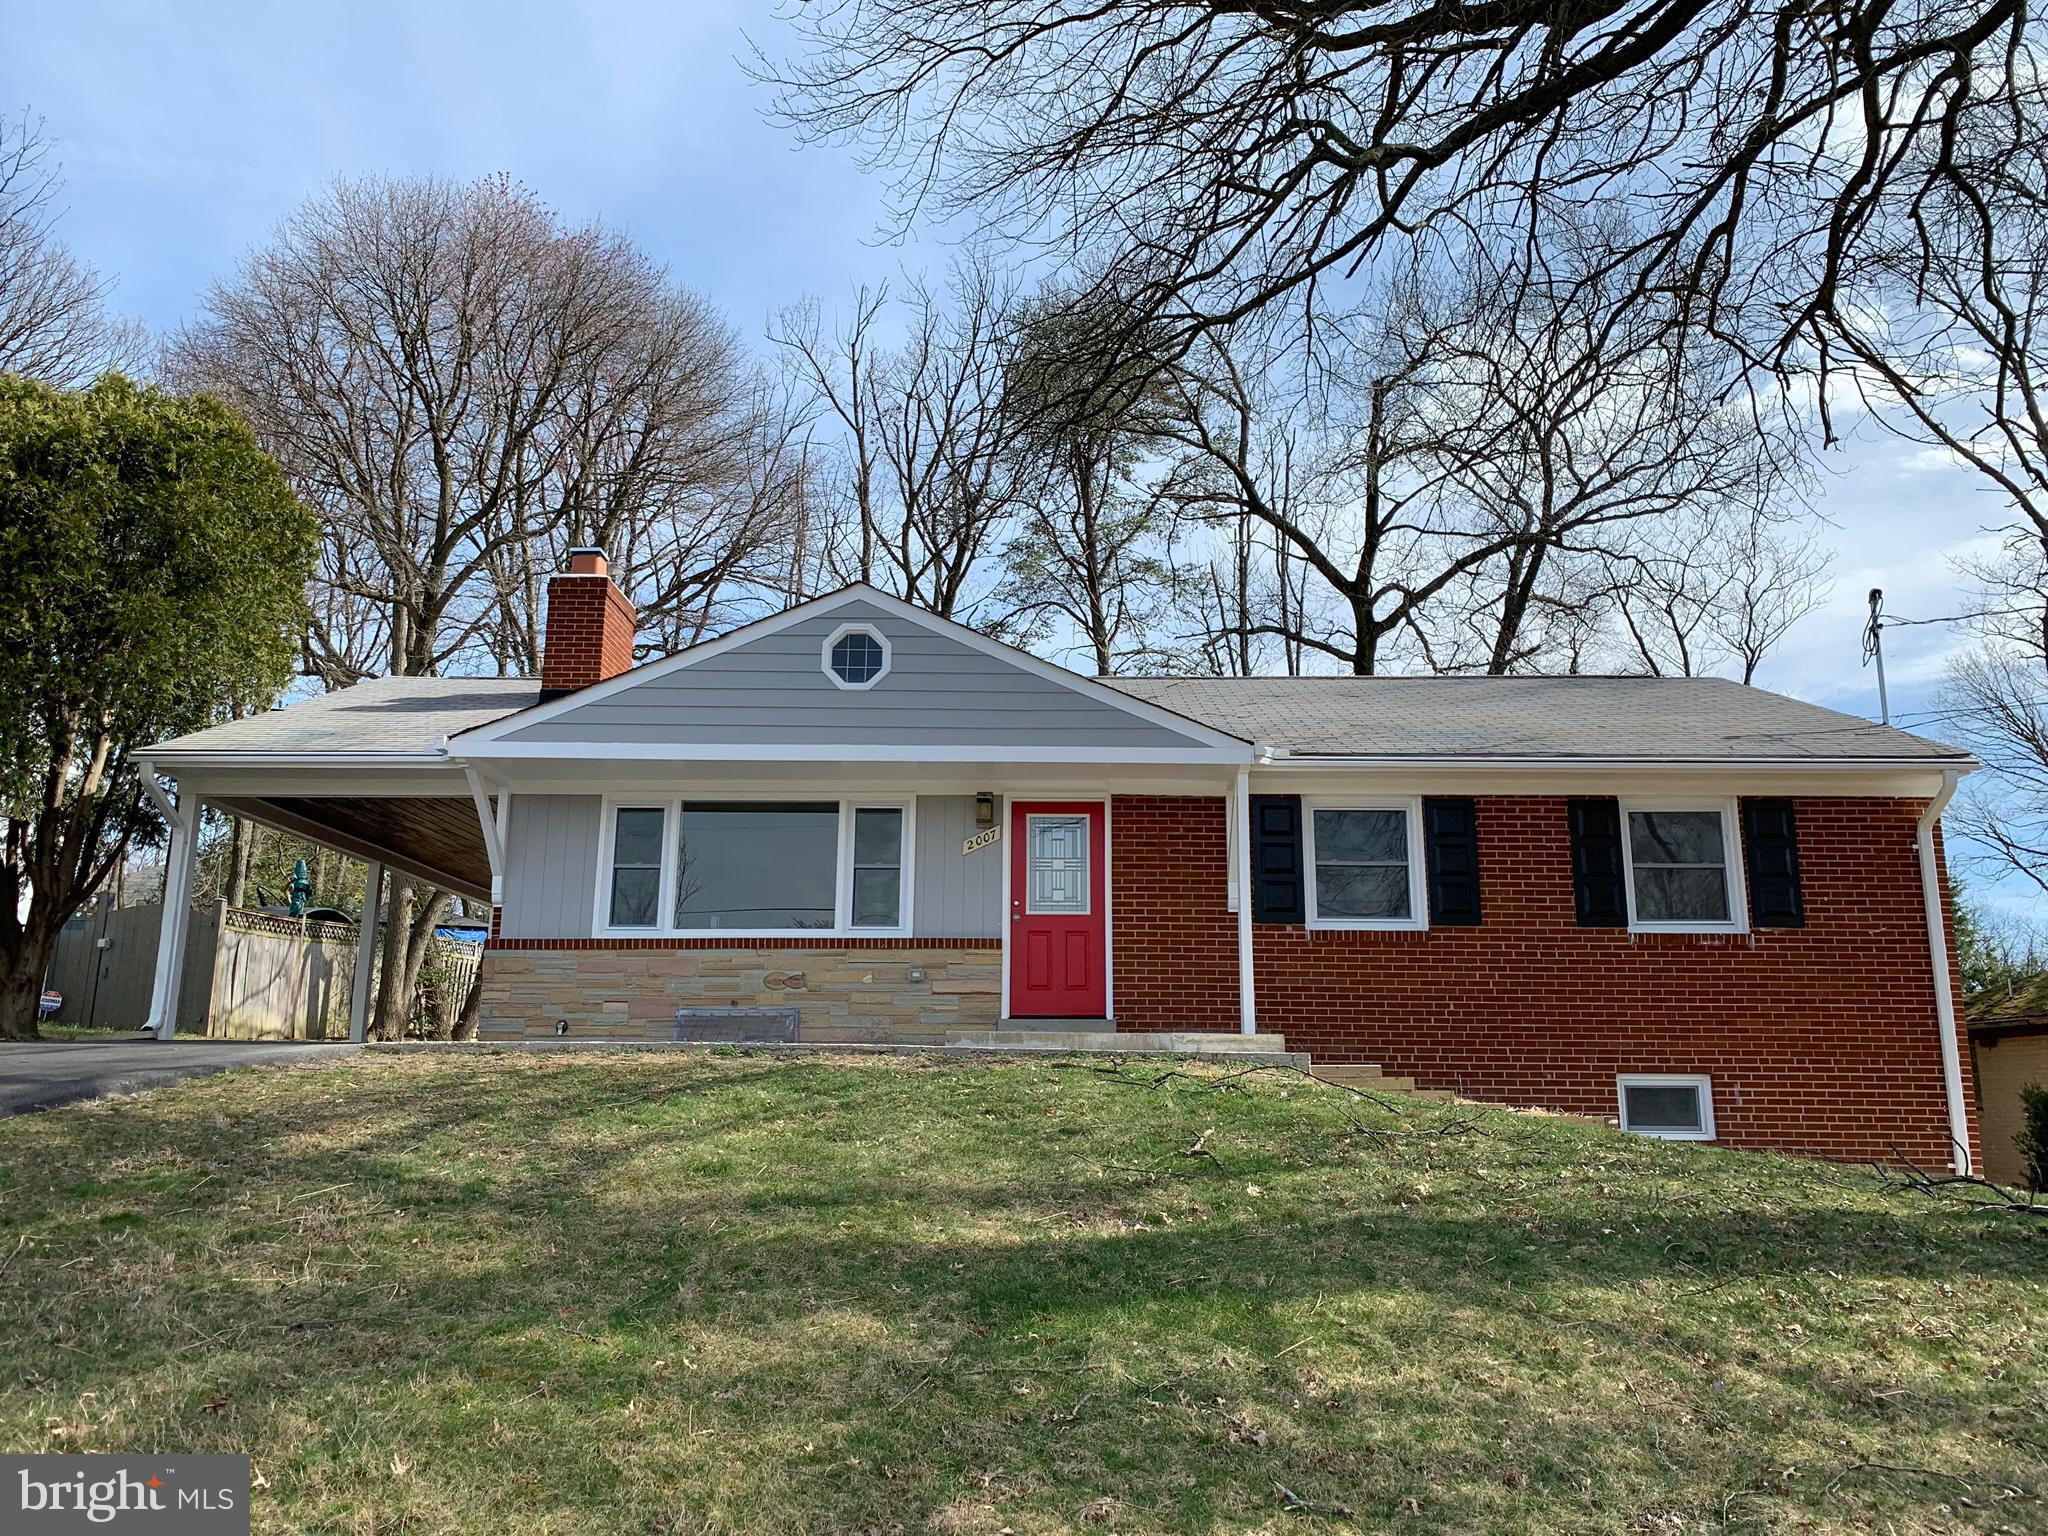 2007 FOREST HILL DRIVE, SILVER SPRING, MD 20903